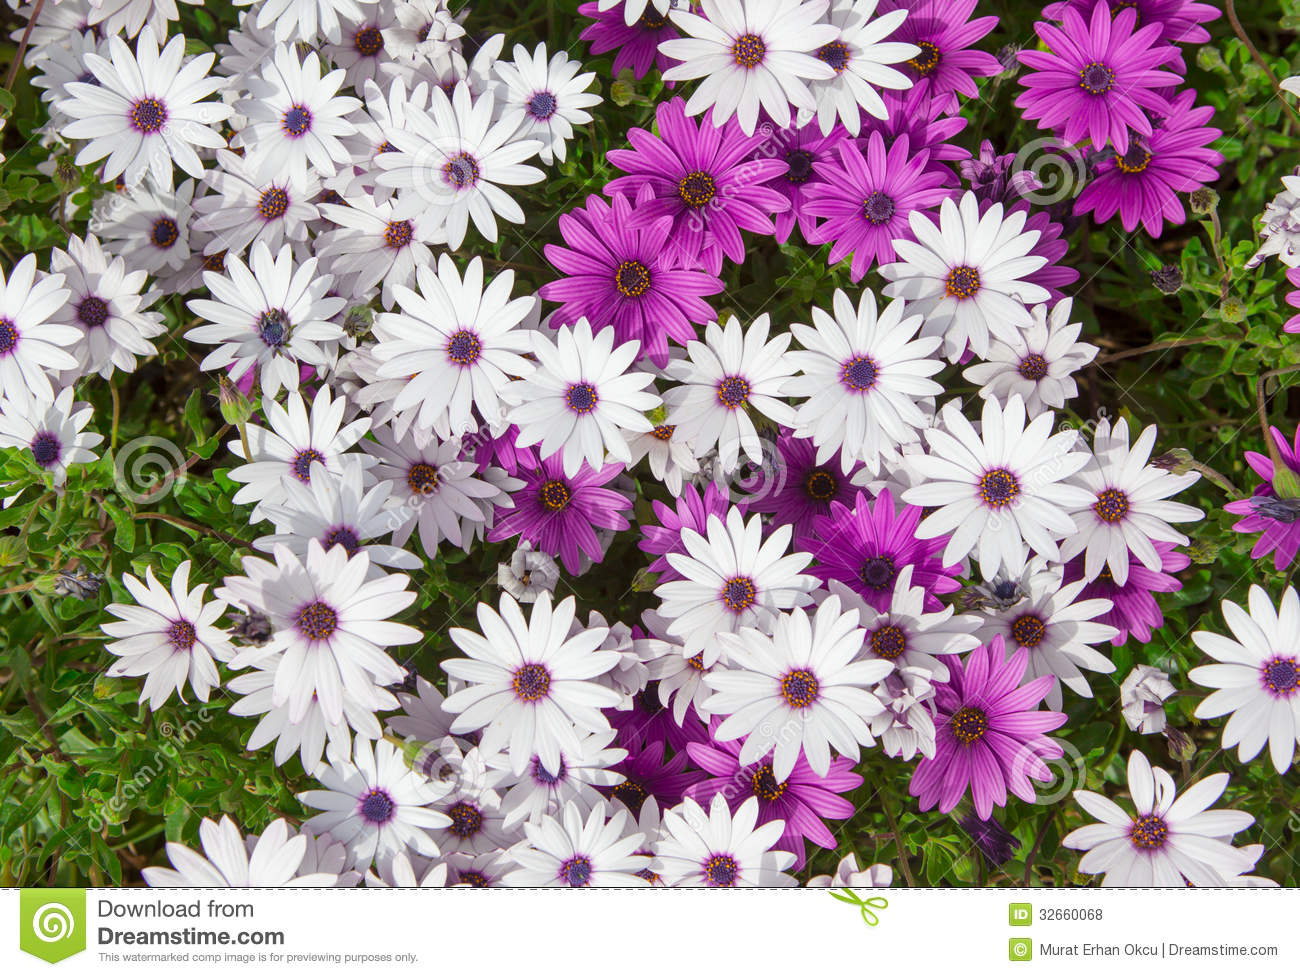 Daisy flower stock photo image of up blossom bloom 32660068 daisy flower izmirmasajfo Image collections